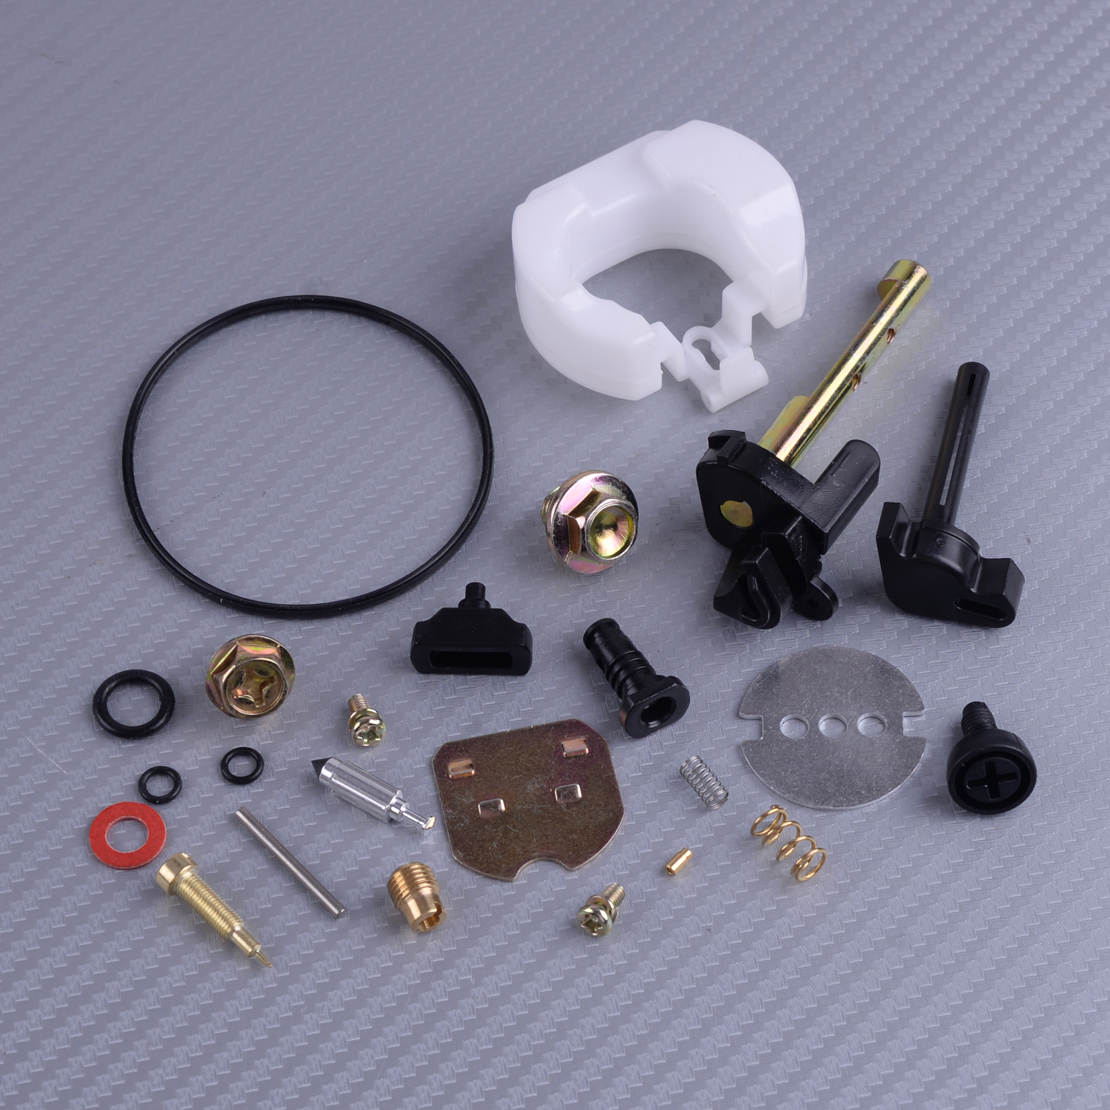 LETAOSK New Carburetor Carb Carby Rebuild Repair Kit Accessories Fit For Honda GX390 13HP